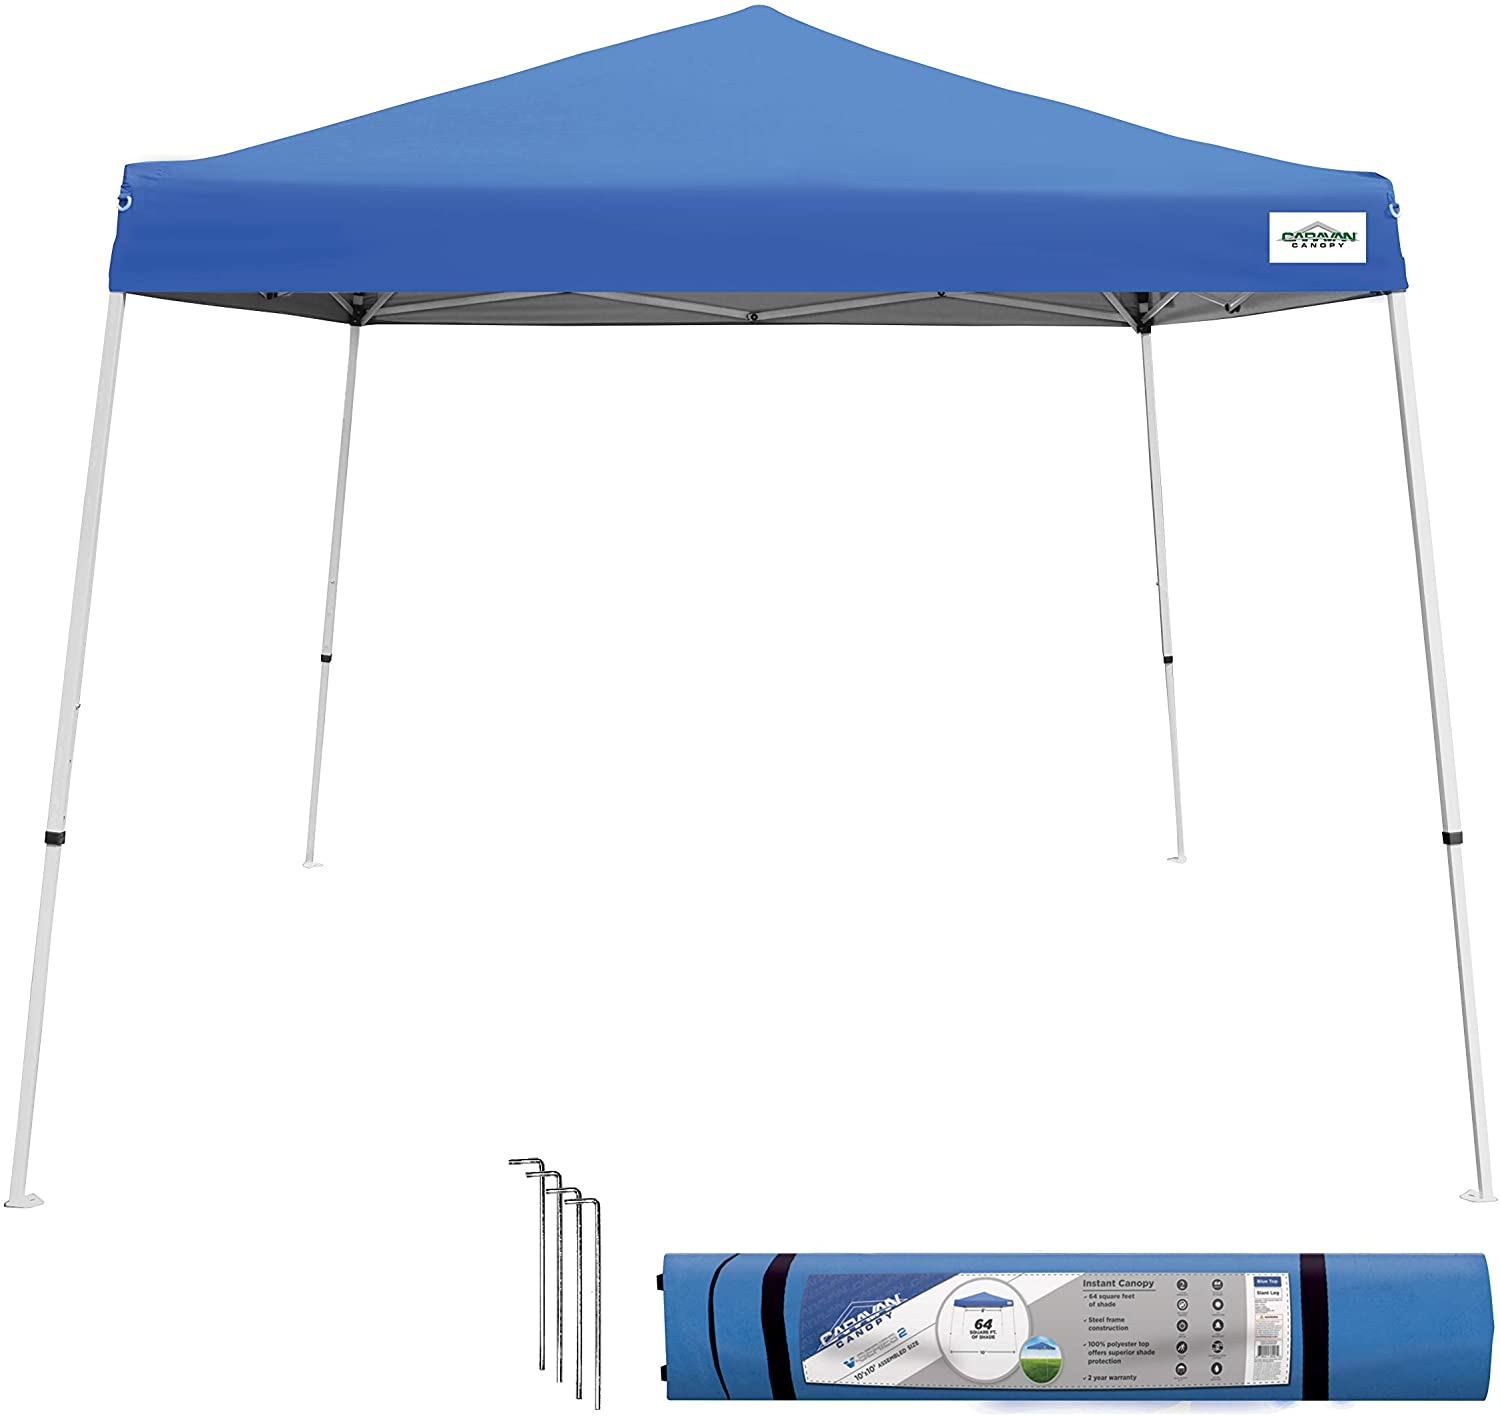 Caravan Canopy Sports 21007800020, 10'x10' Base 8'x8' top, Blue